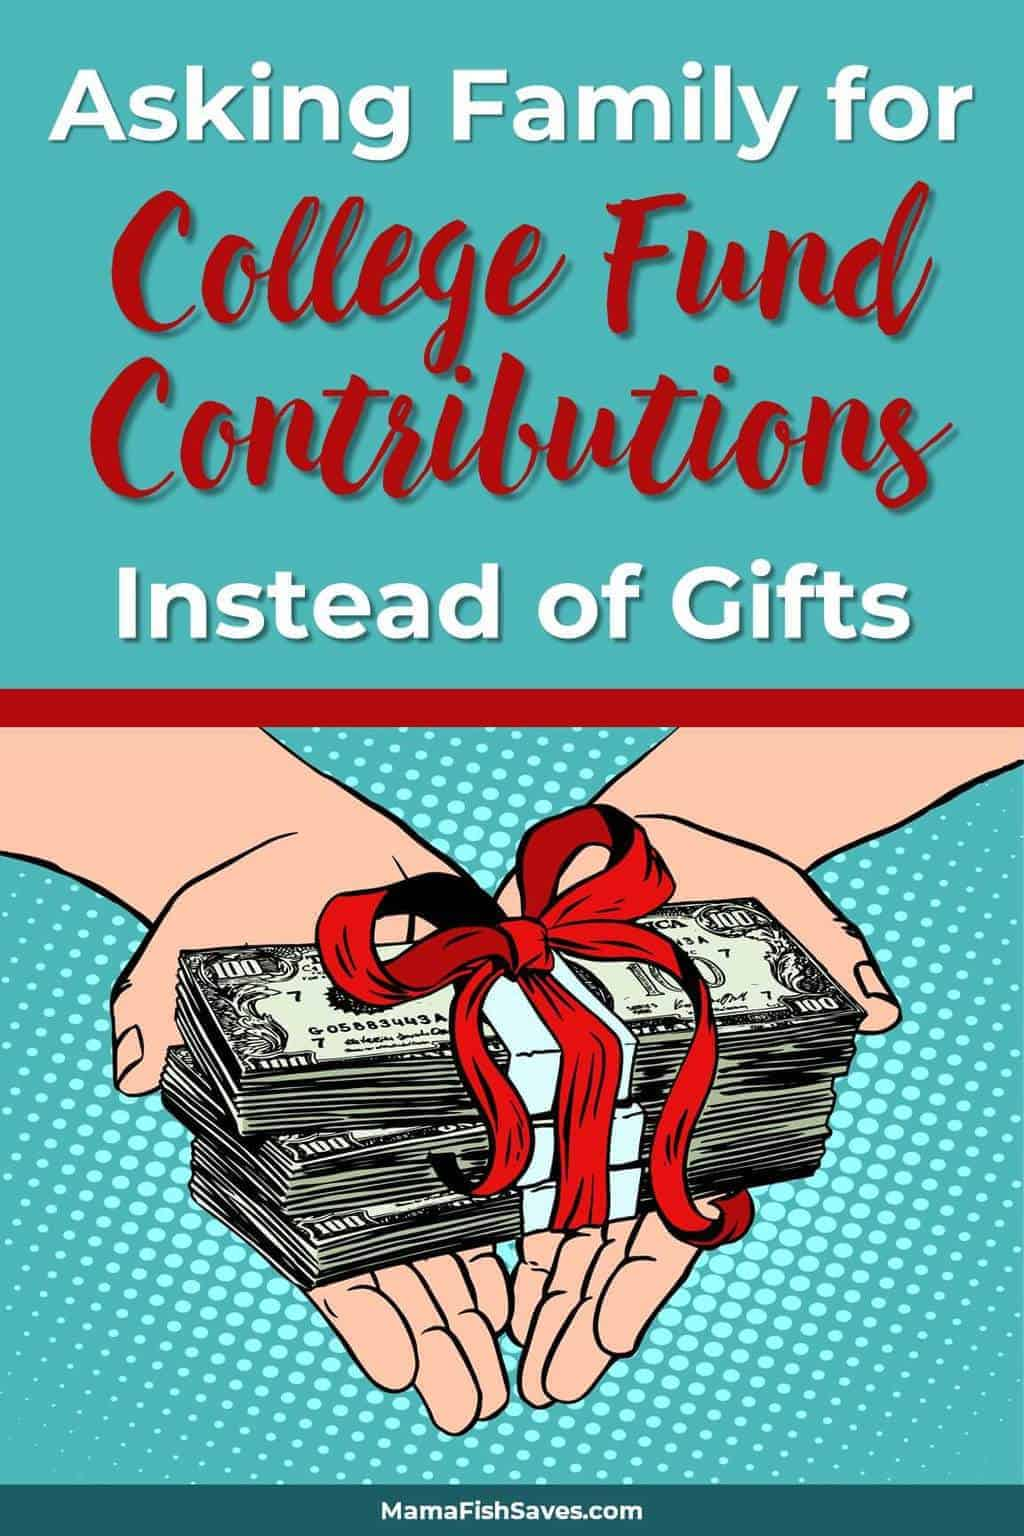 I need to get my parents on board to stop with all the gifts and contribute to the kids\' 529 plans instead. We are working so hard to save for college and we don\'t need any more stuff! #giftideas #collegesavings #529plans #college